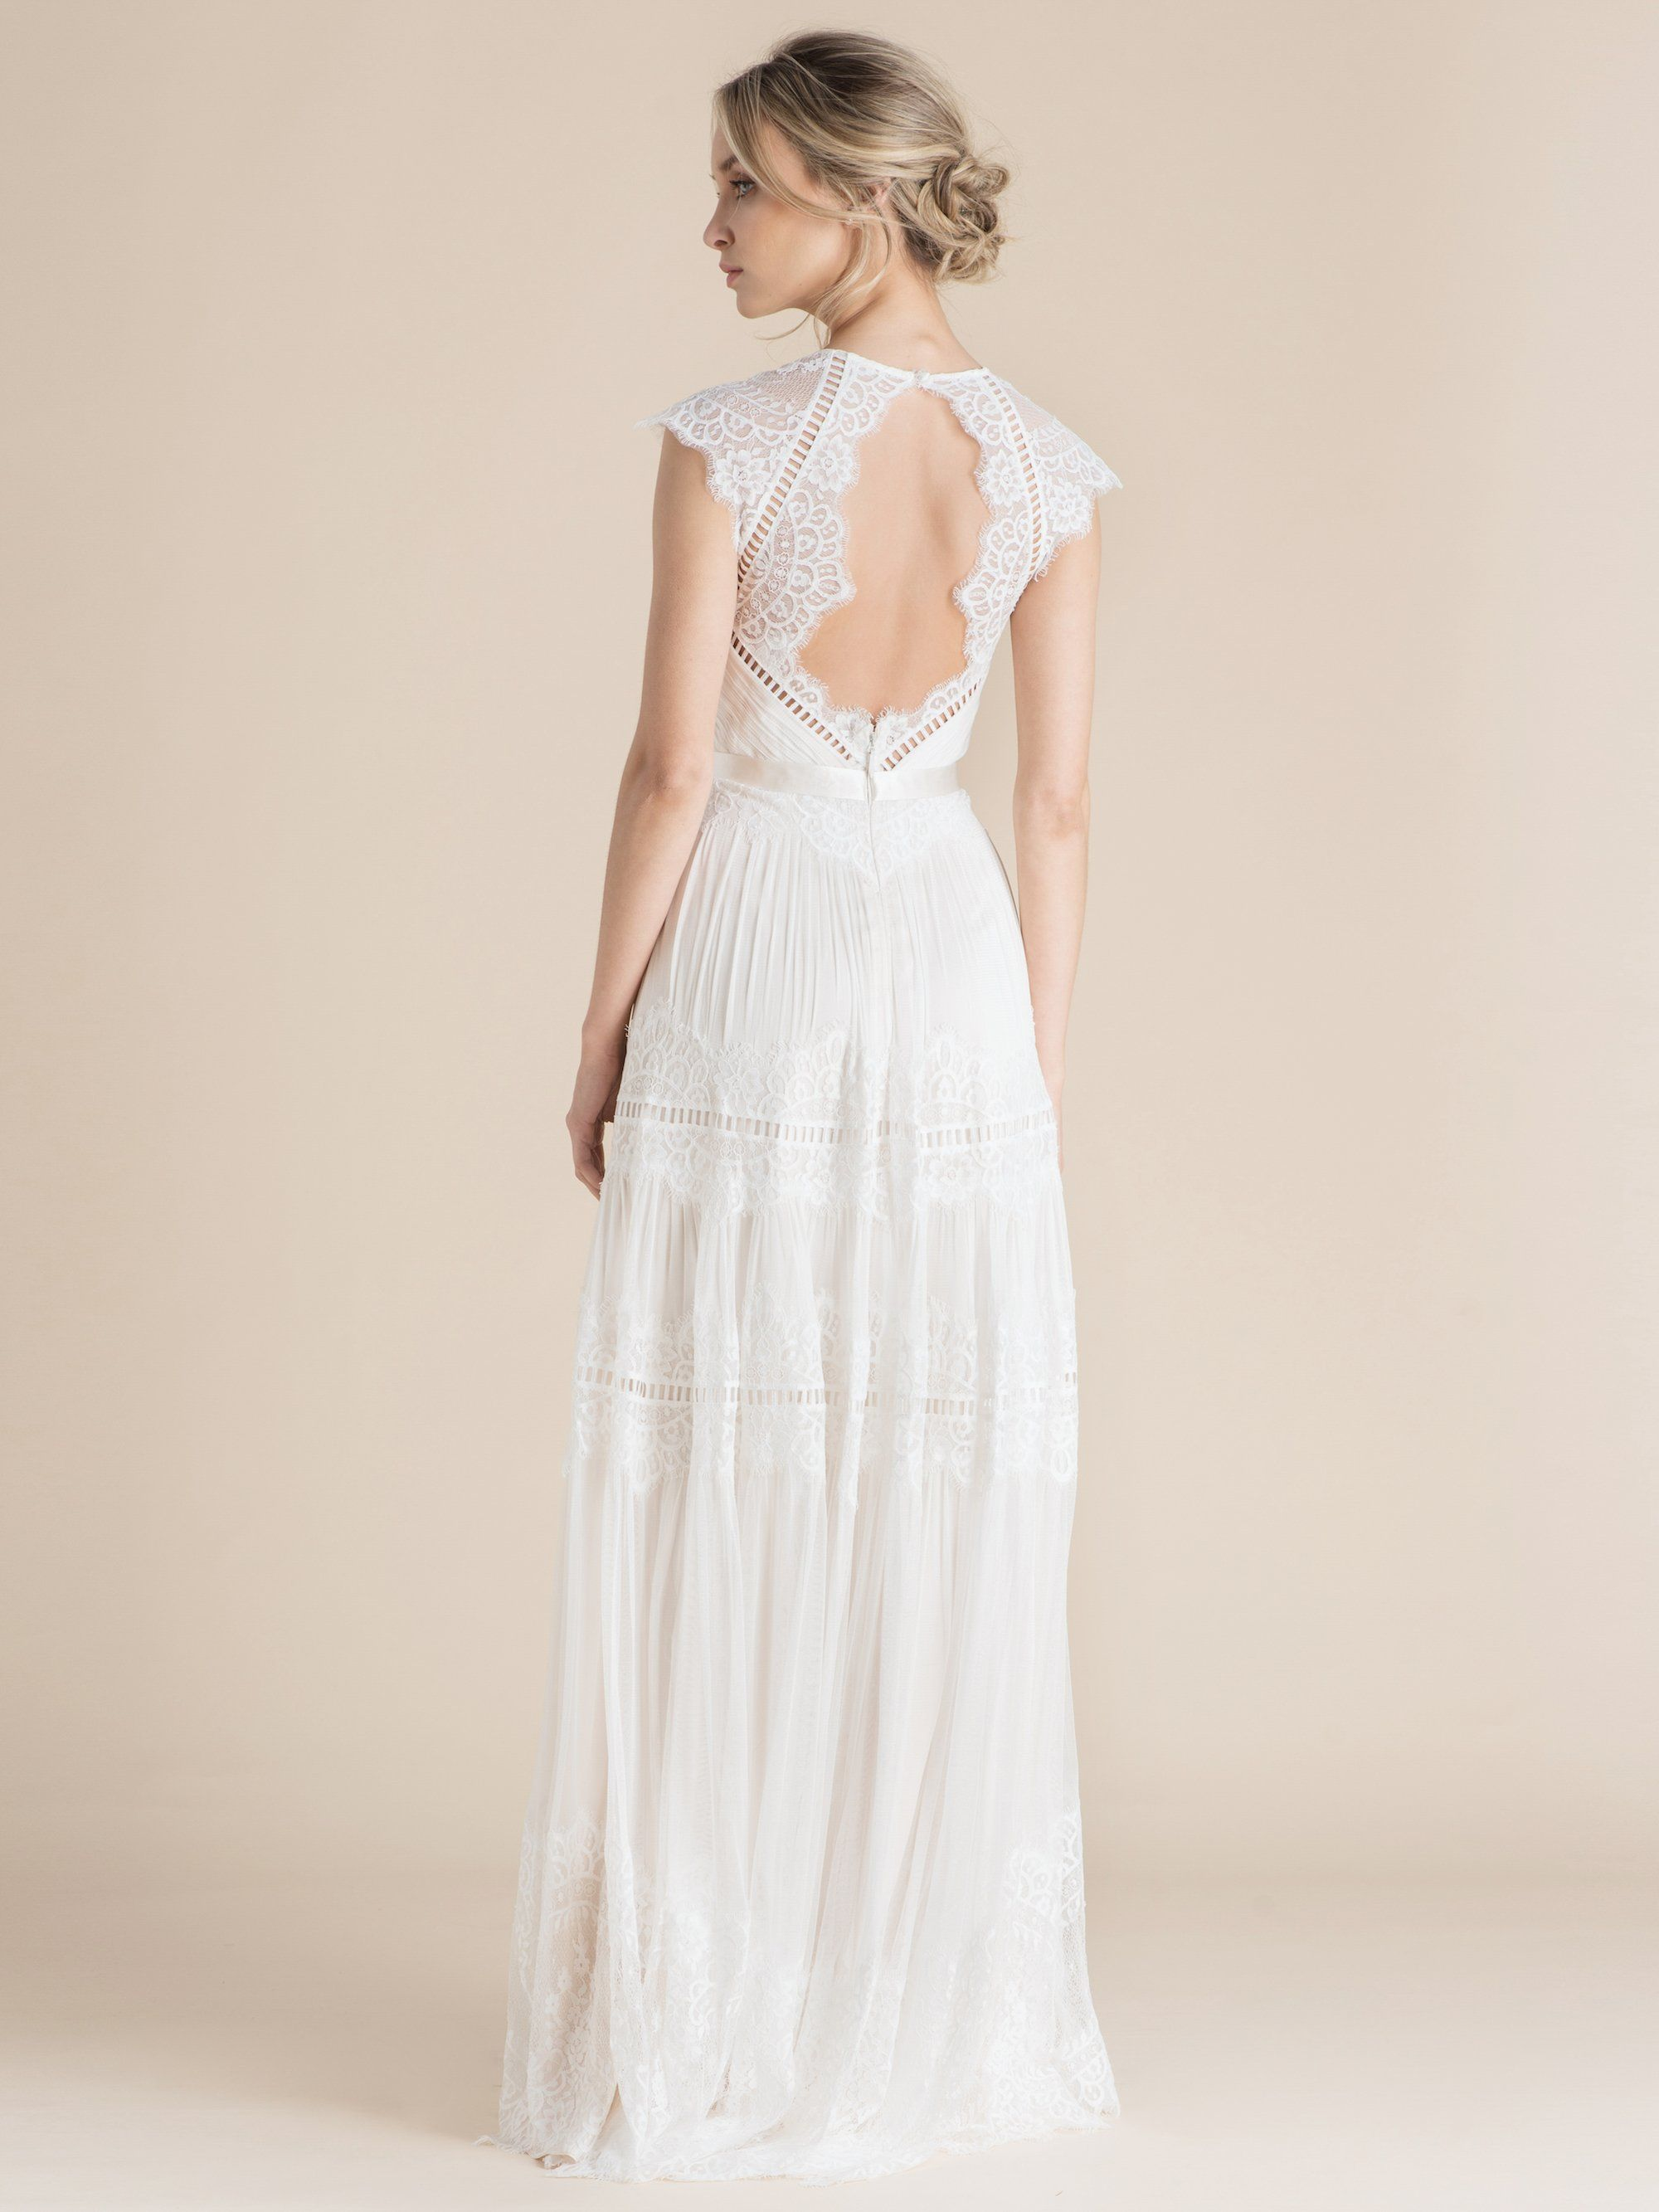 Boho wedding dress emphasised by vintagestyle graphic